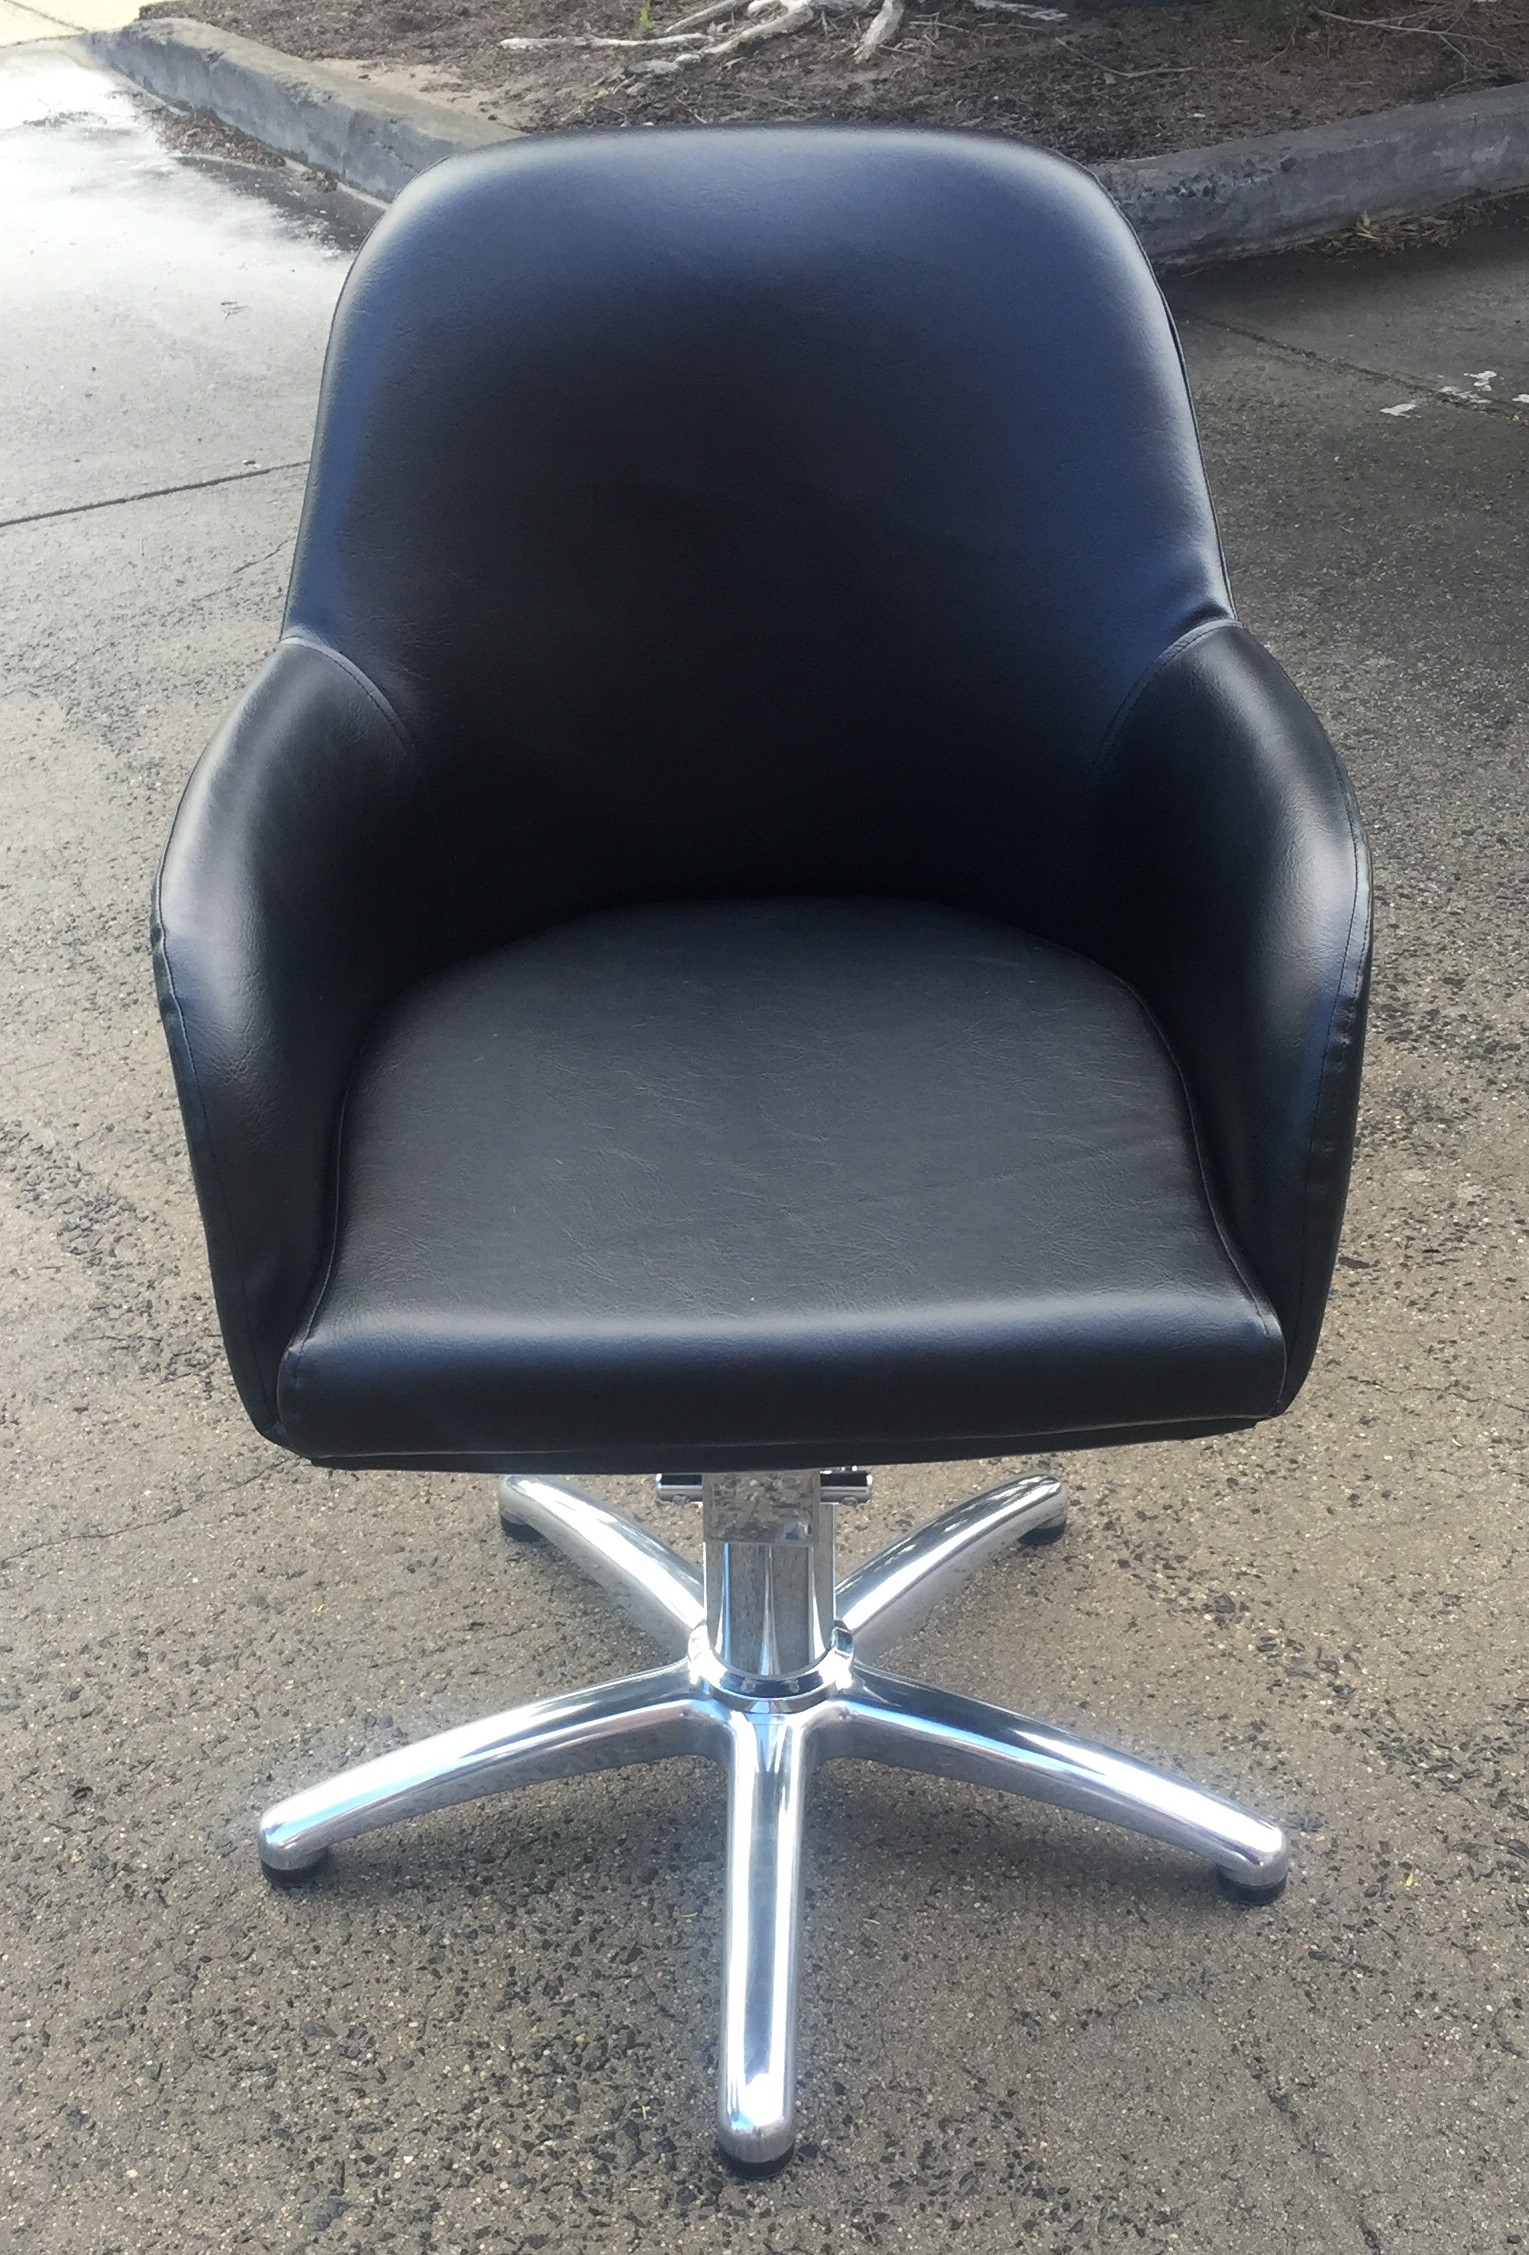 Australian Made Pilot Salon Chair